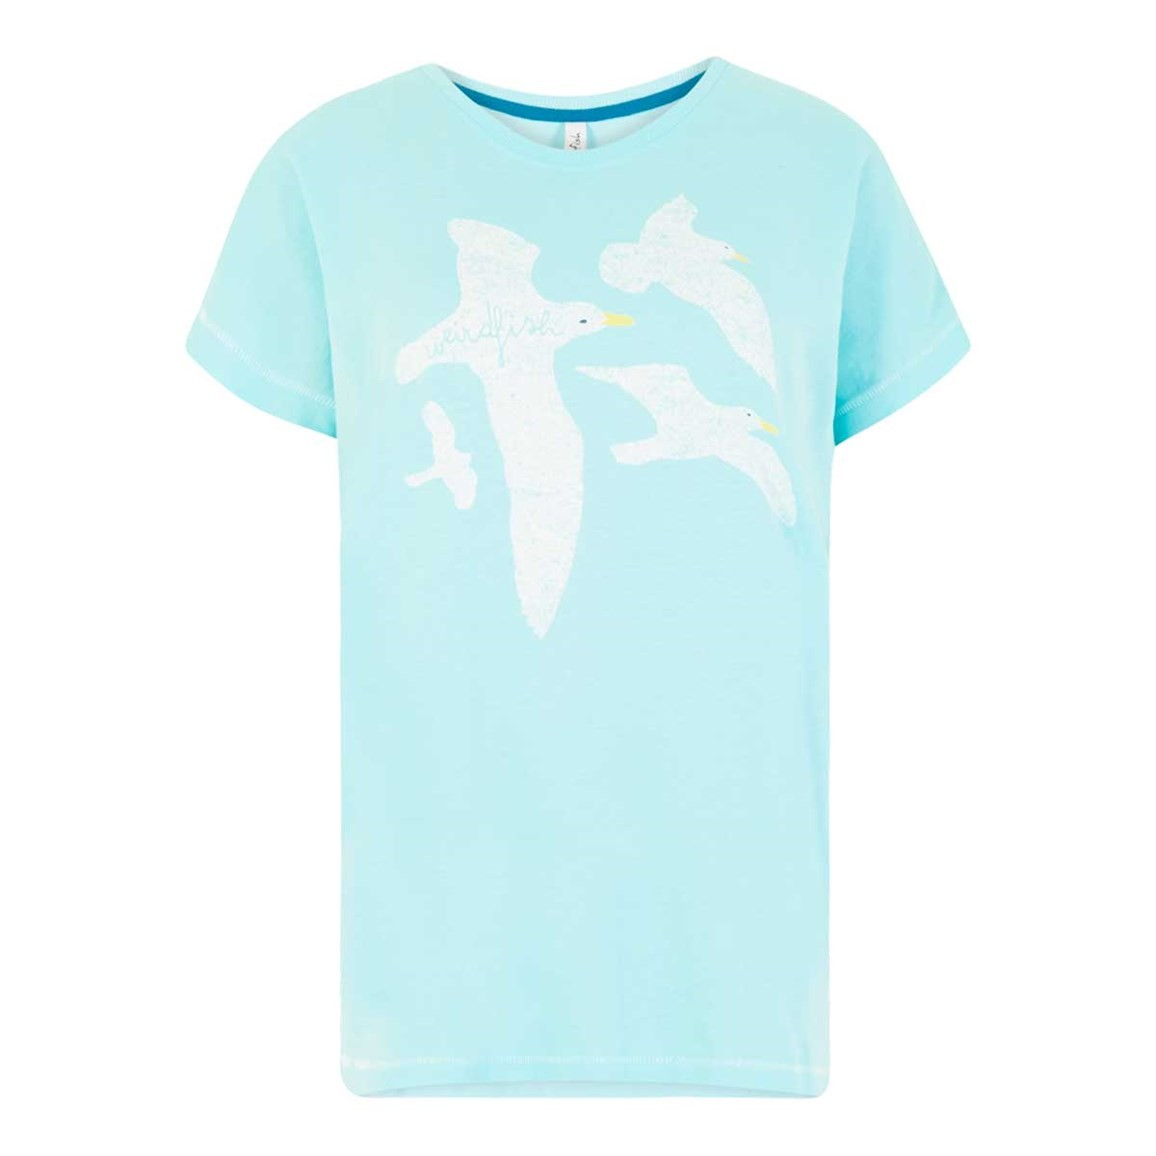 Weird Fish Seagull Graphic T-Shirt Aqua Sky